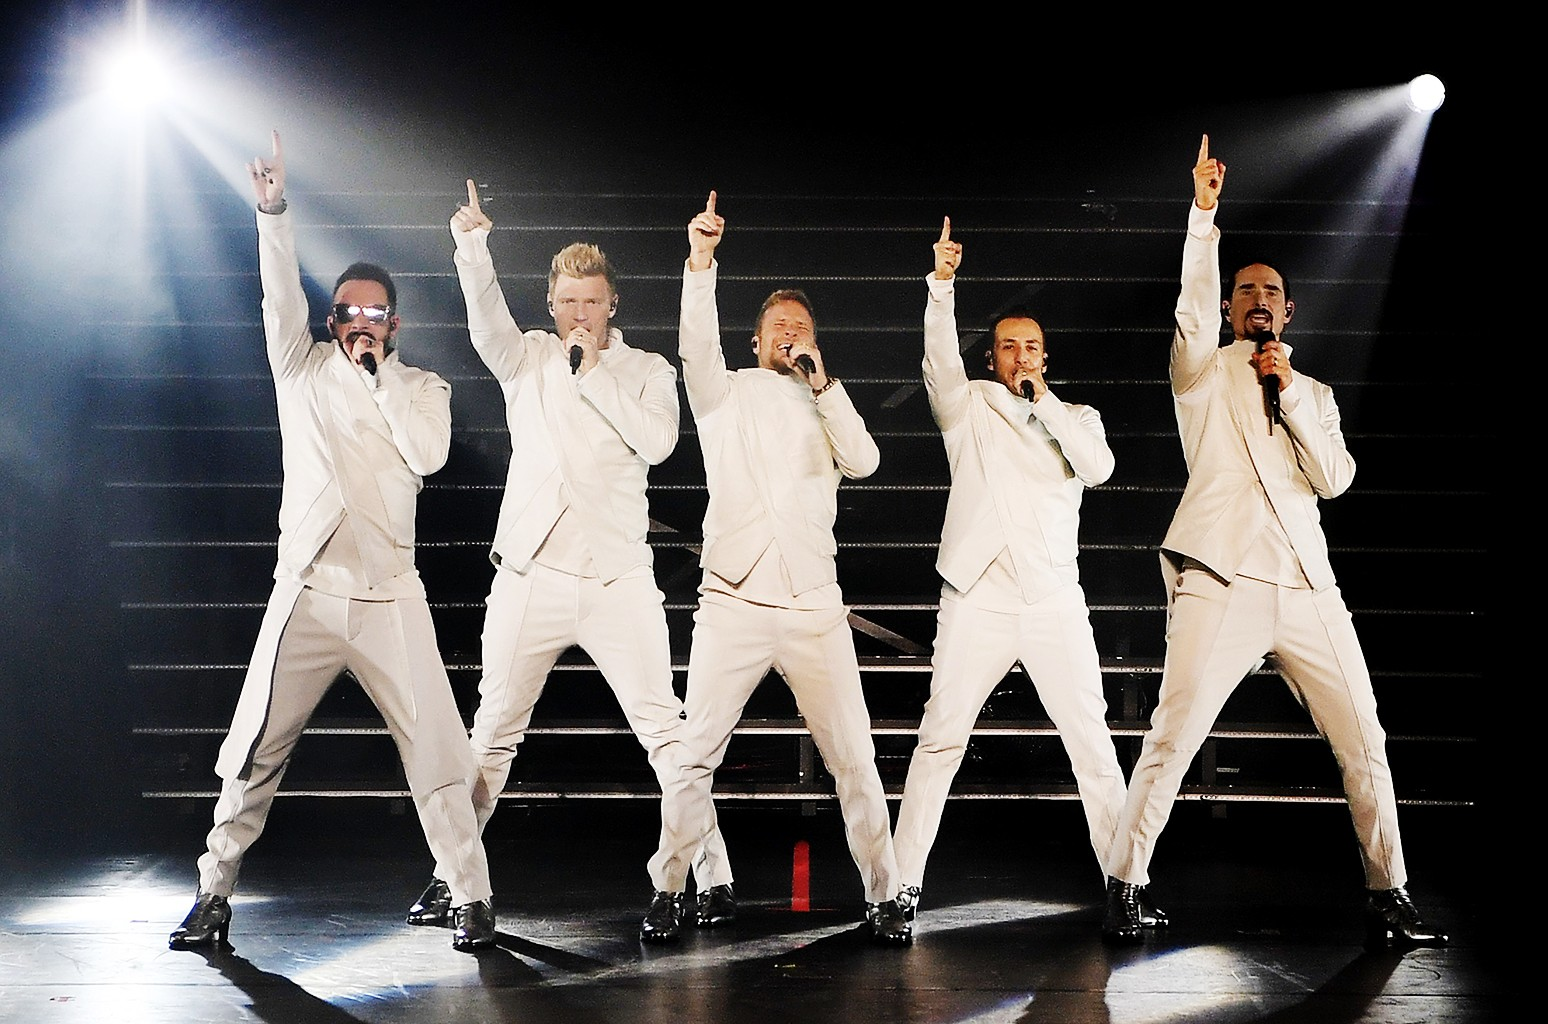 AJ McLean, Nick Carter, Brian Littrell, Howie Dorough and Kevin Richardson of the Backstreet Boys